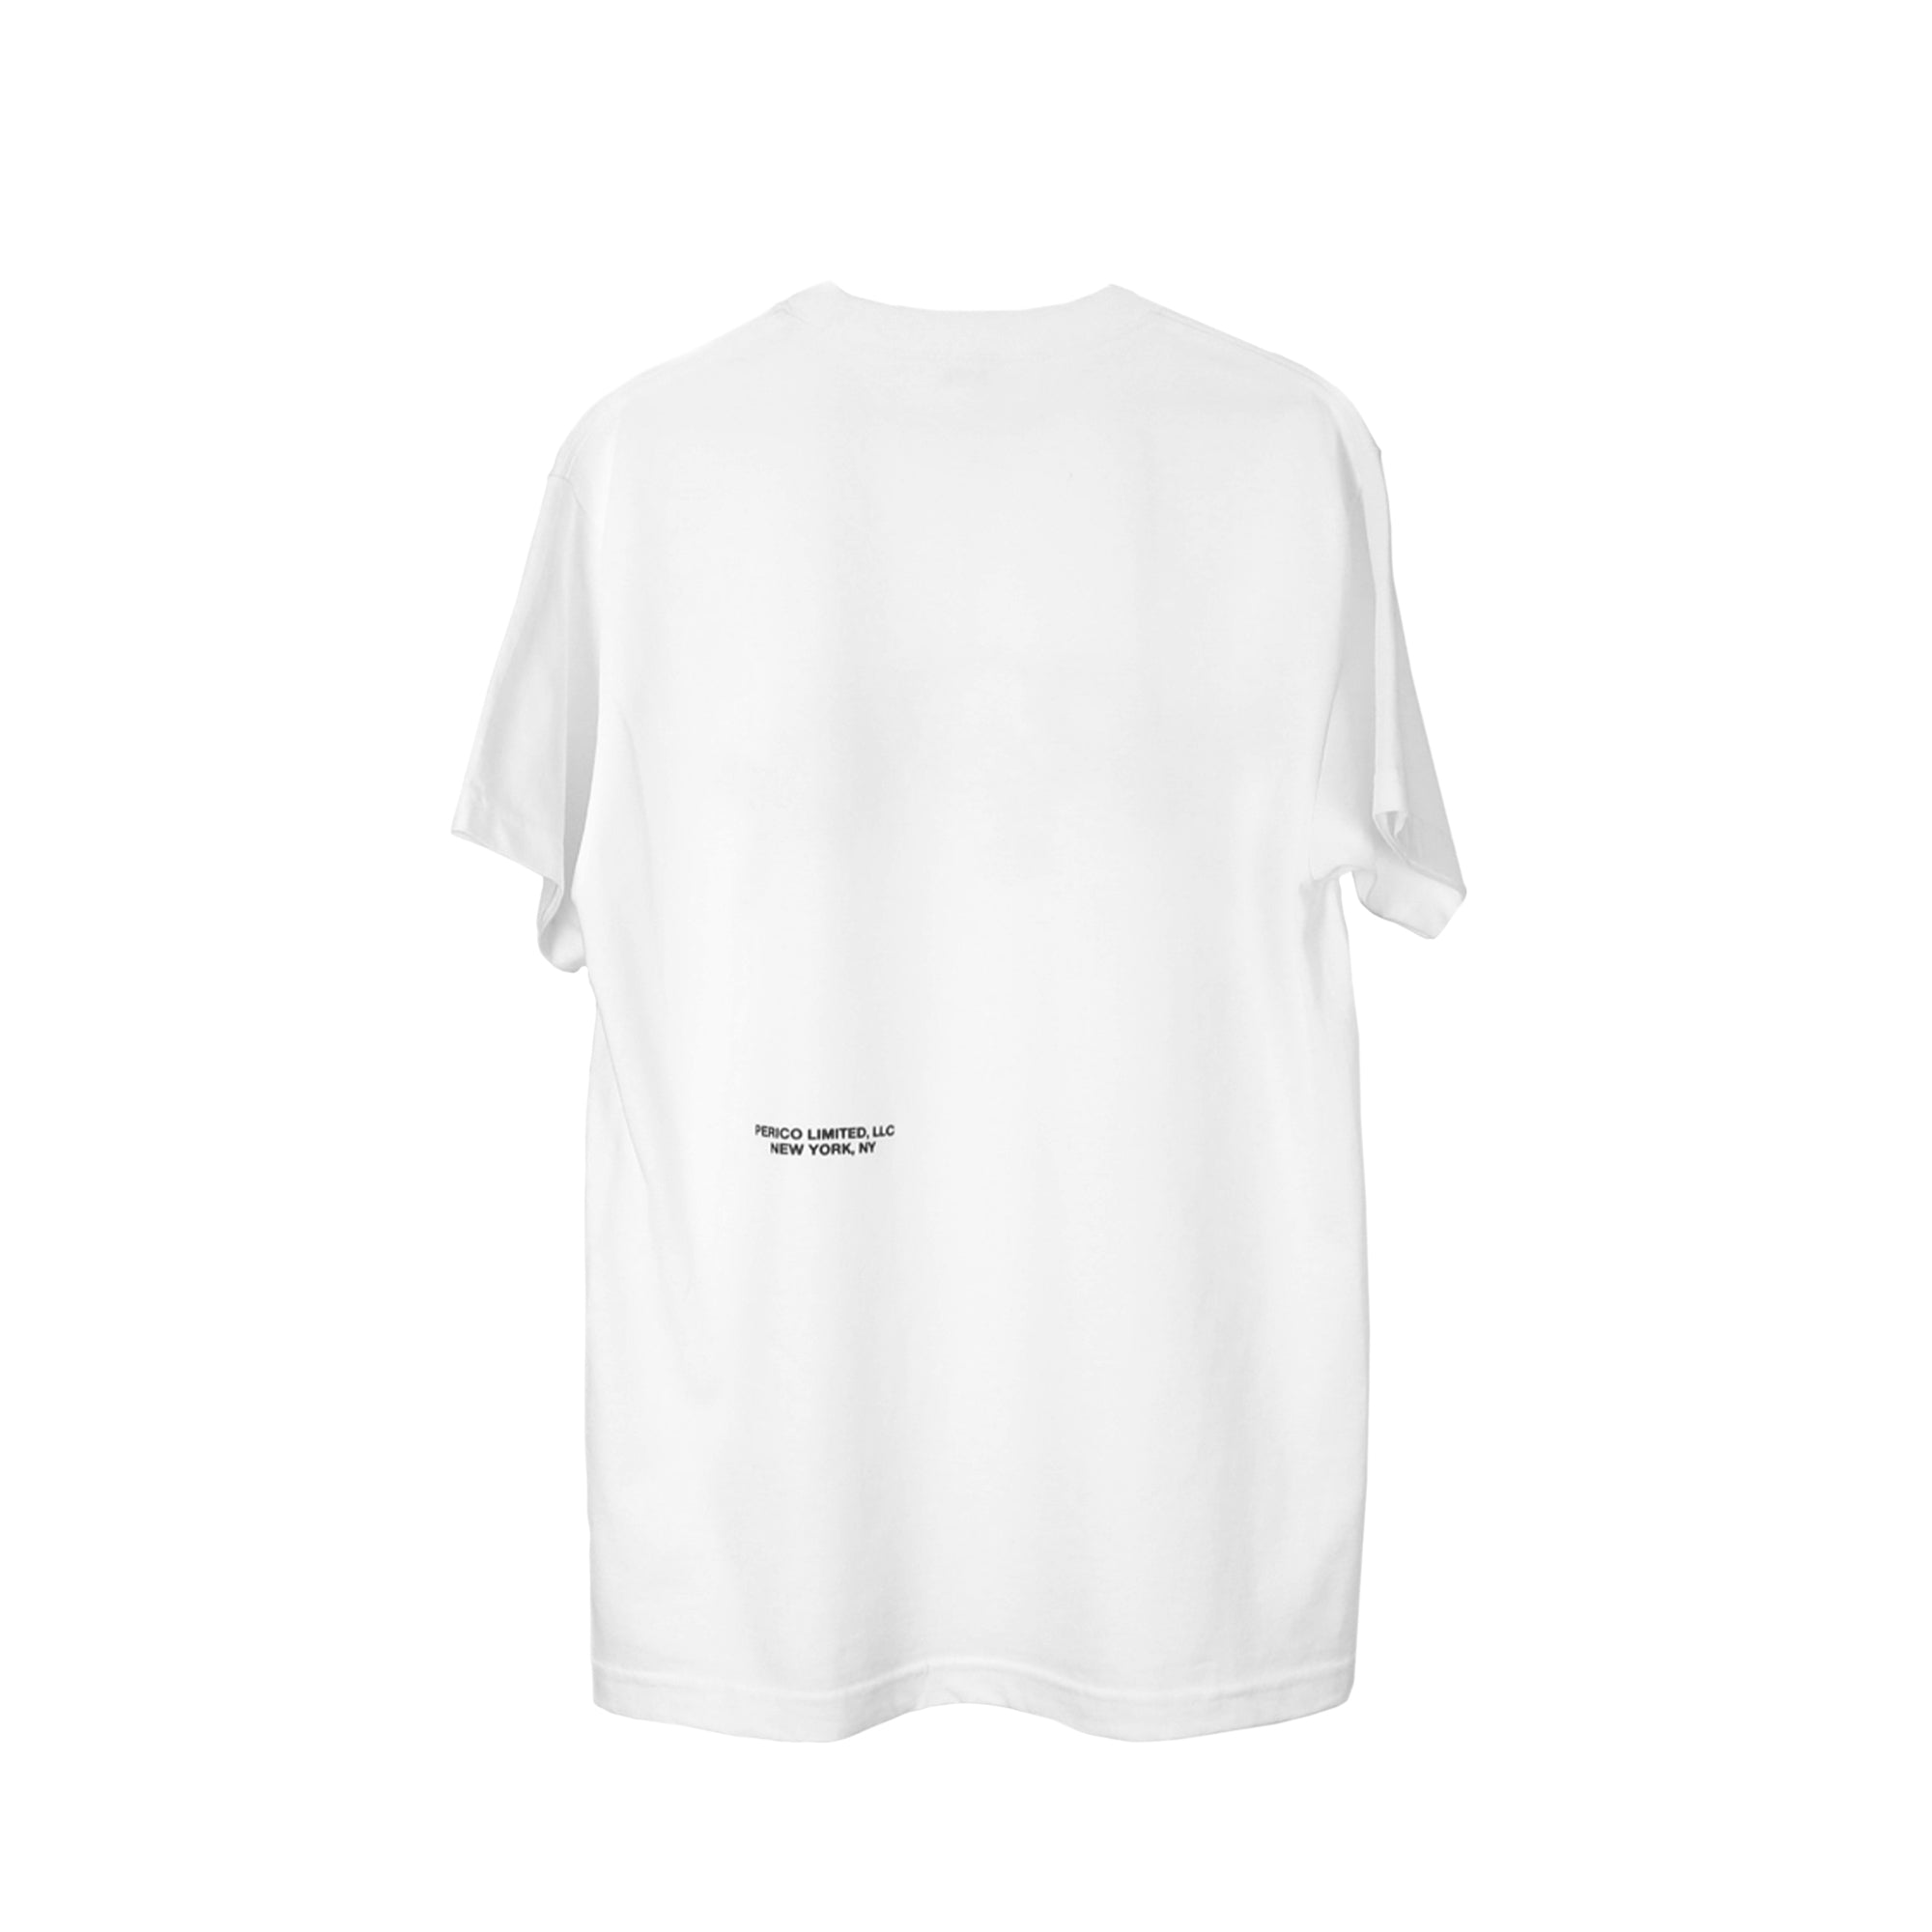 Heights Smiley - White S/S